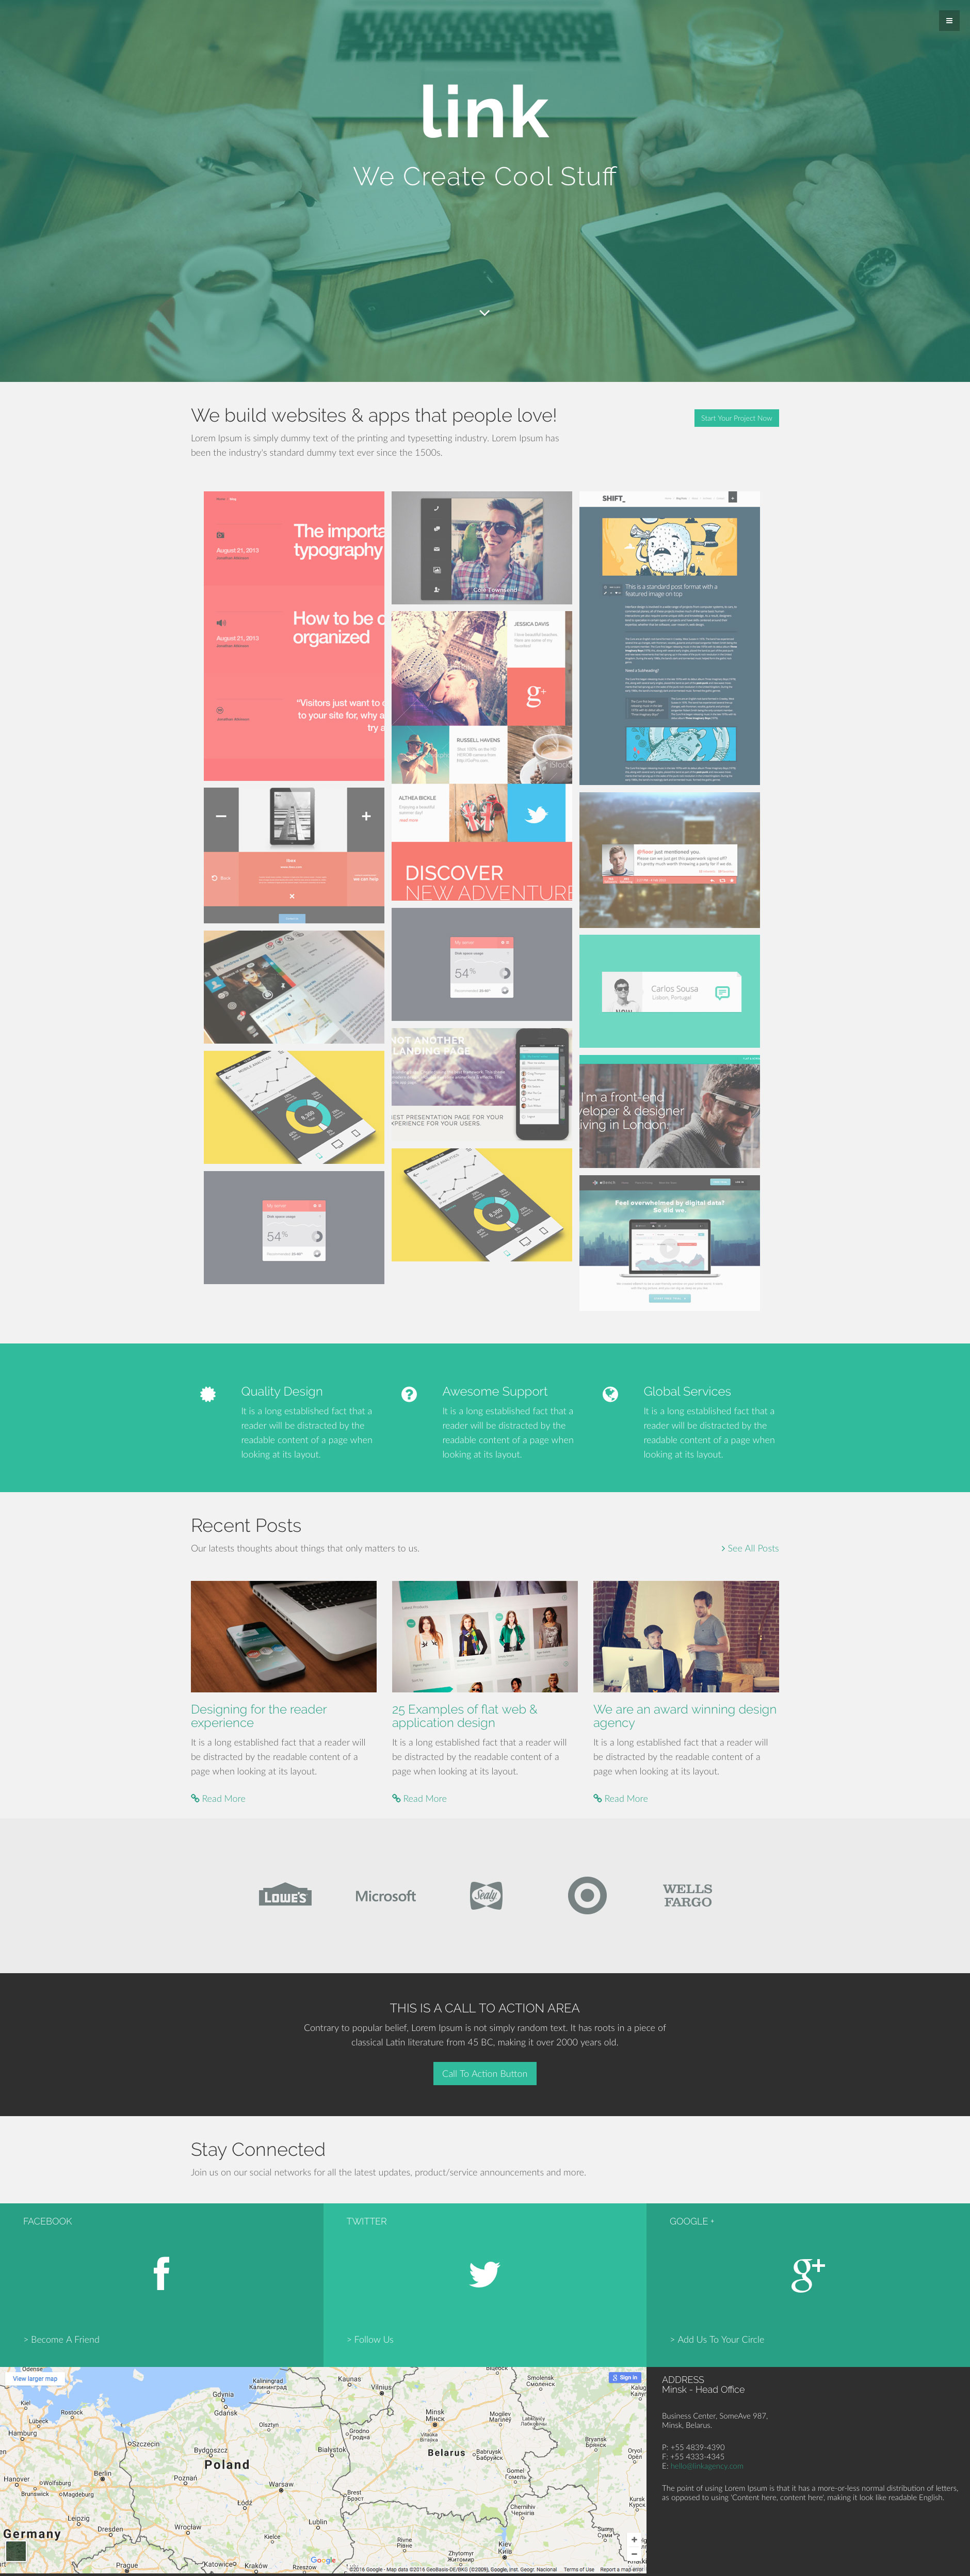 Link is a free responsive HTML5 template built on the popular Bootstrap 3 front-end framework. Link template features Font Awesome, CSS animations, masonry grid gallery, google maps and many more. It comes with 6 pages.